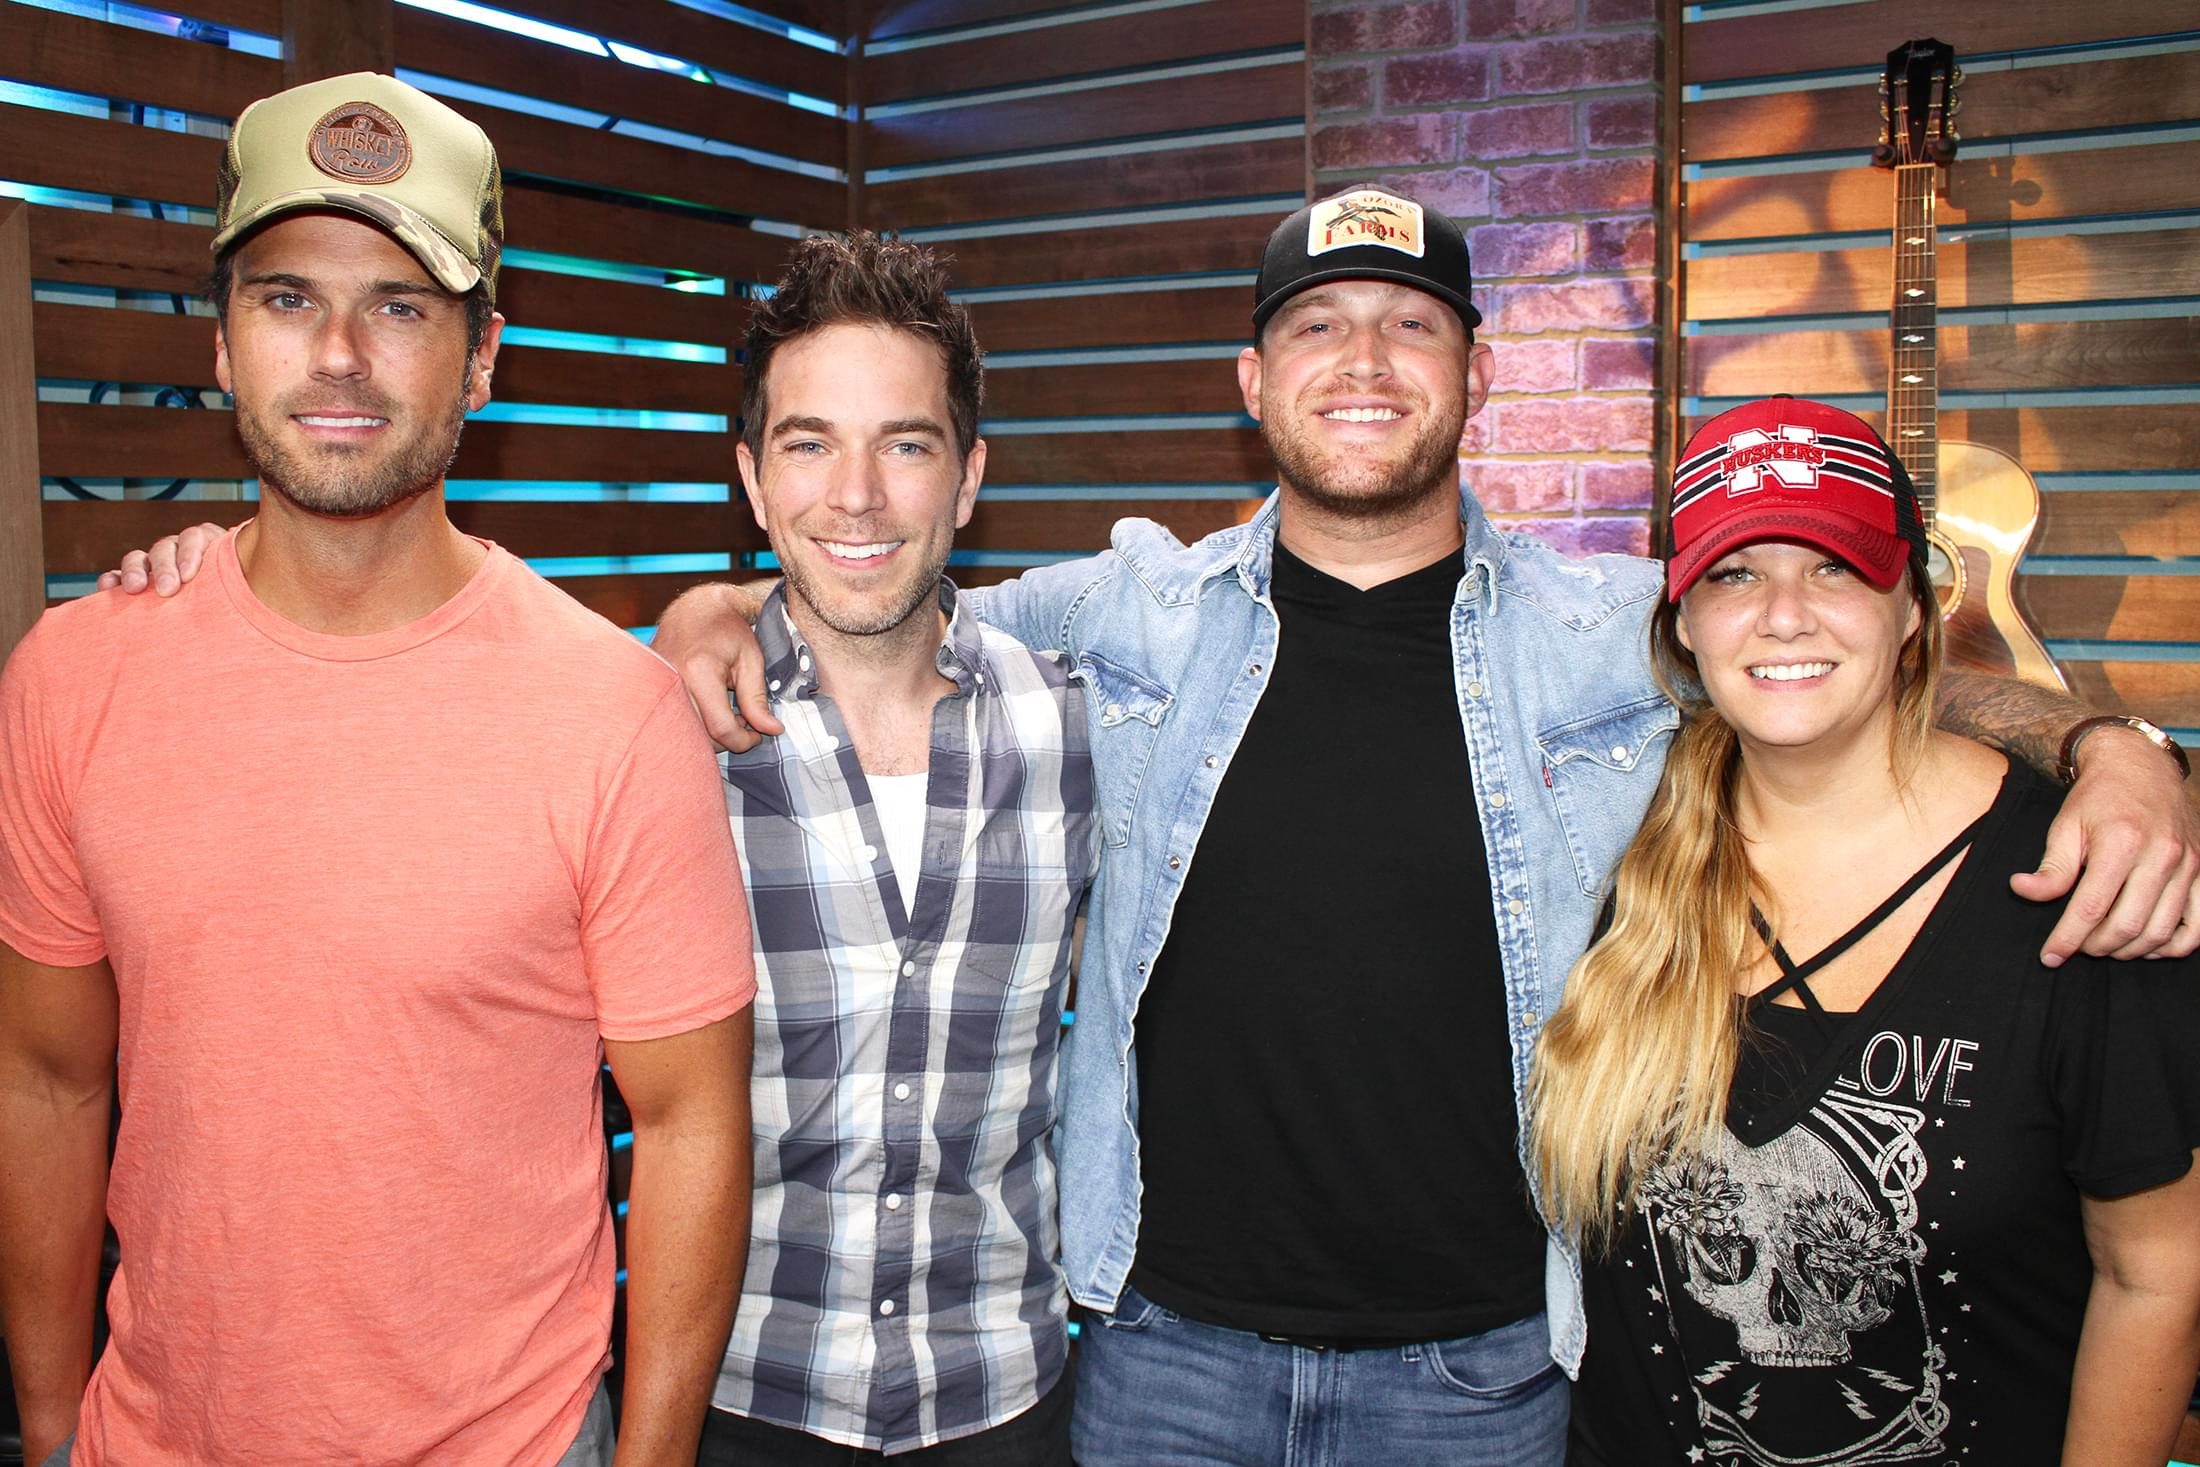 Jon Langston Takes on Our #CarryOrContribute Challenge, Explains How Rhett Akins Discovered Him By Sliding Into His DMs, How Luke Bryan Signed Him, & MORE